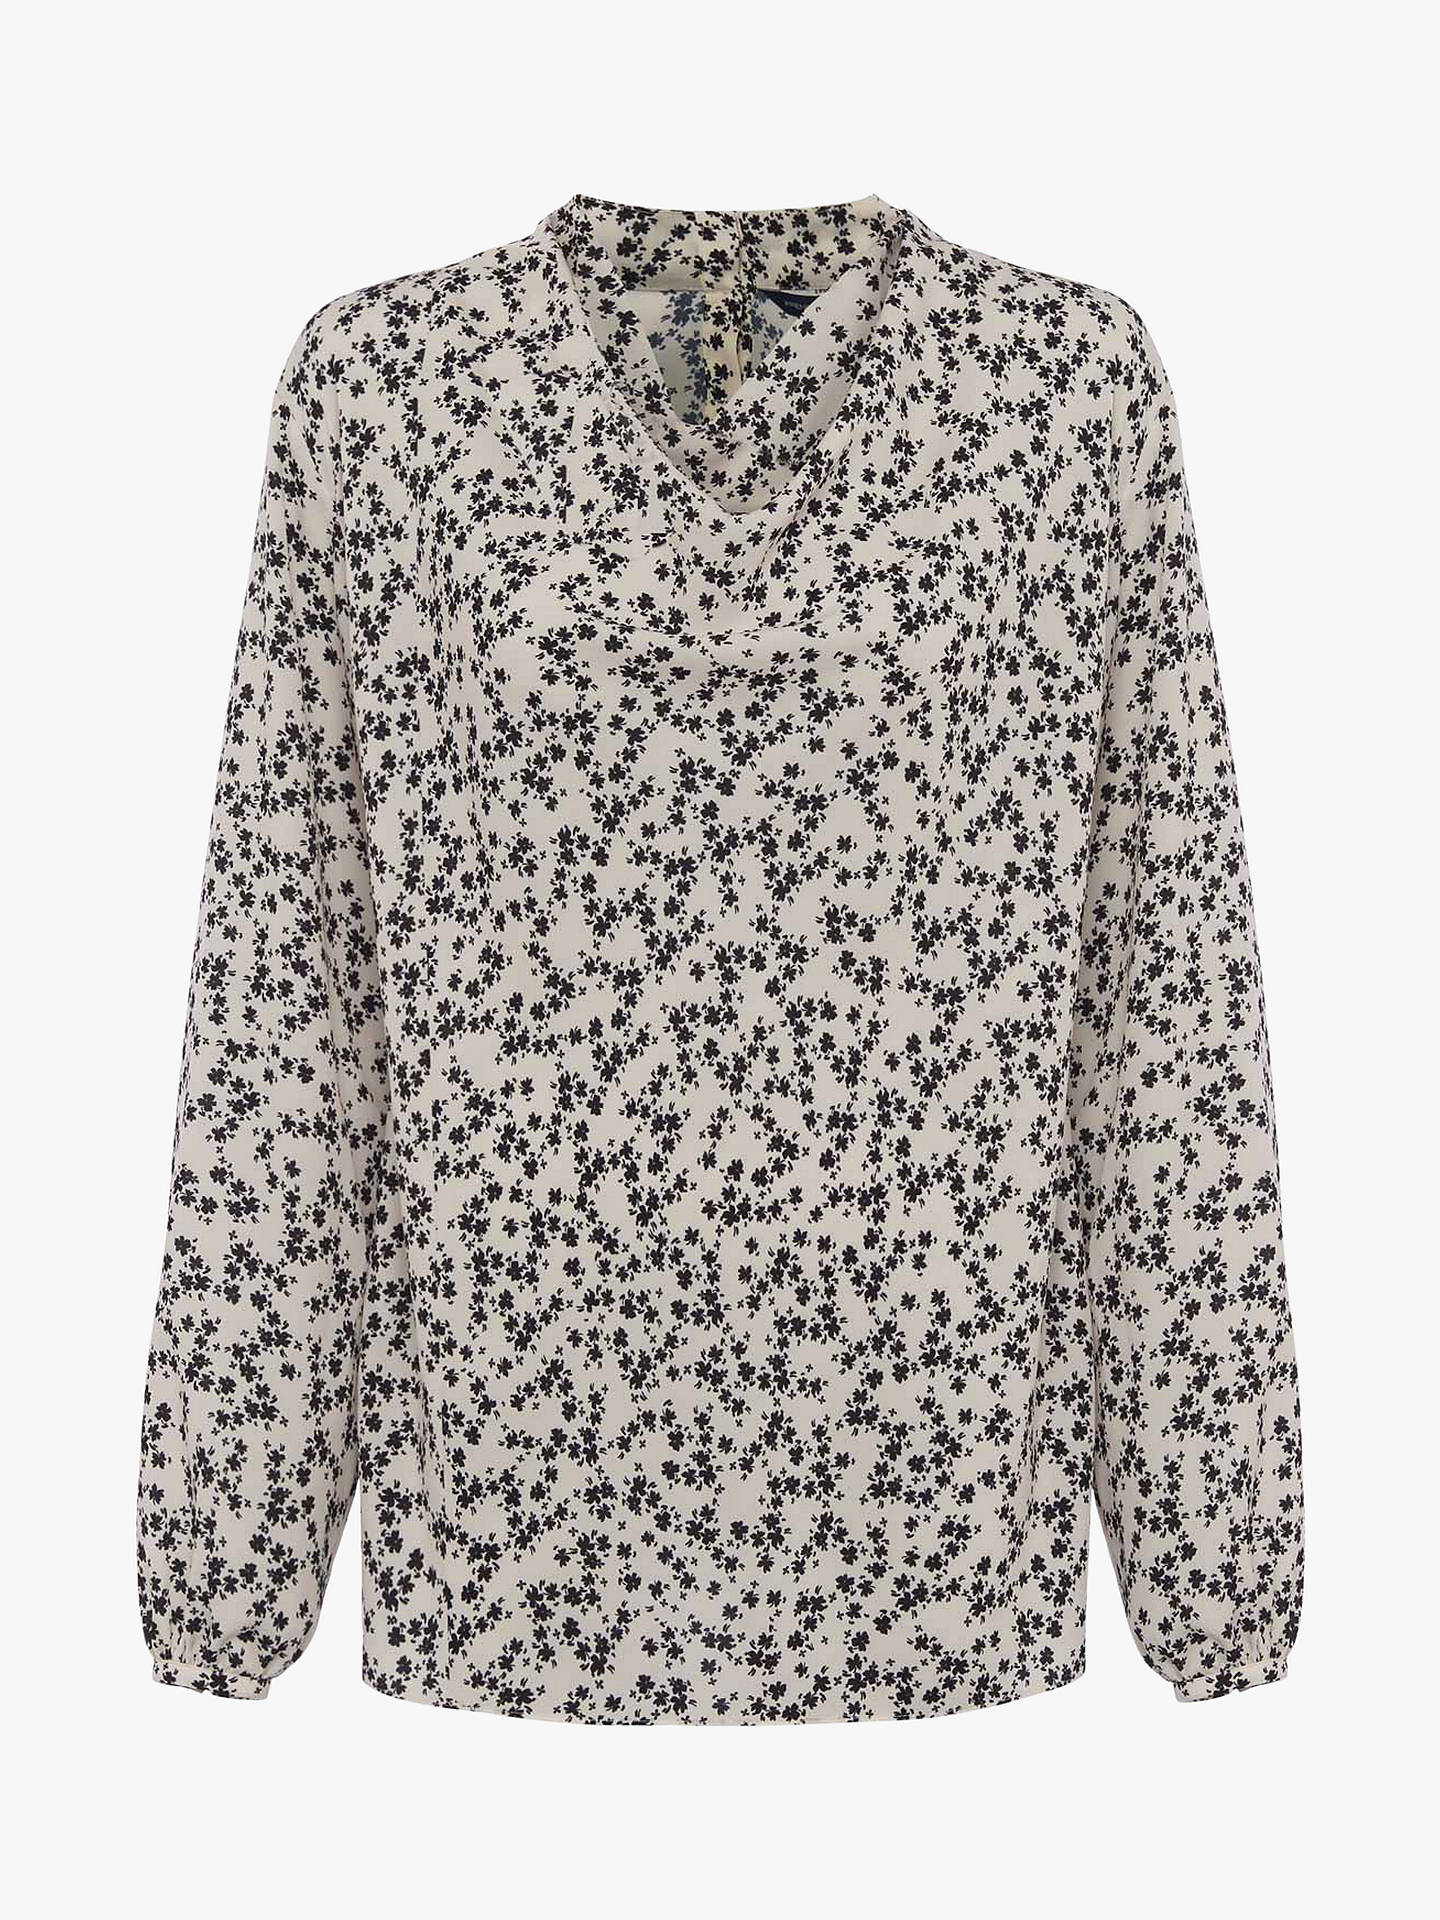 Buy French Connection Bruna Floral Print Long Sleeve Top, Classic Cream/Black, 6 Online at johnlewis.com